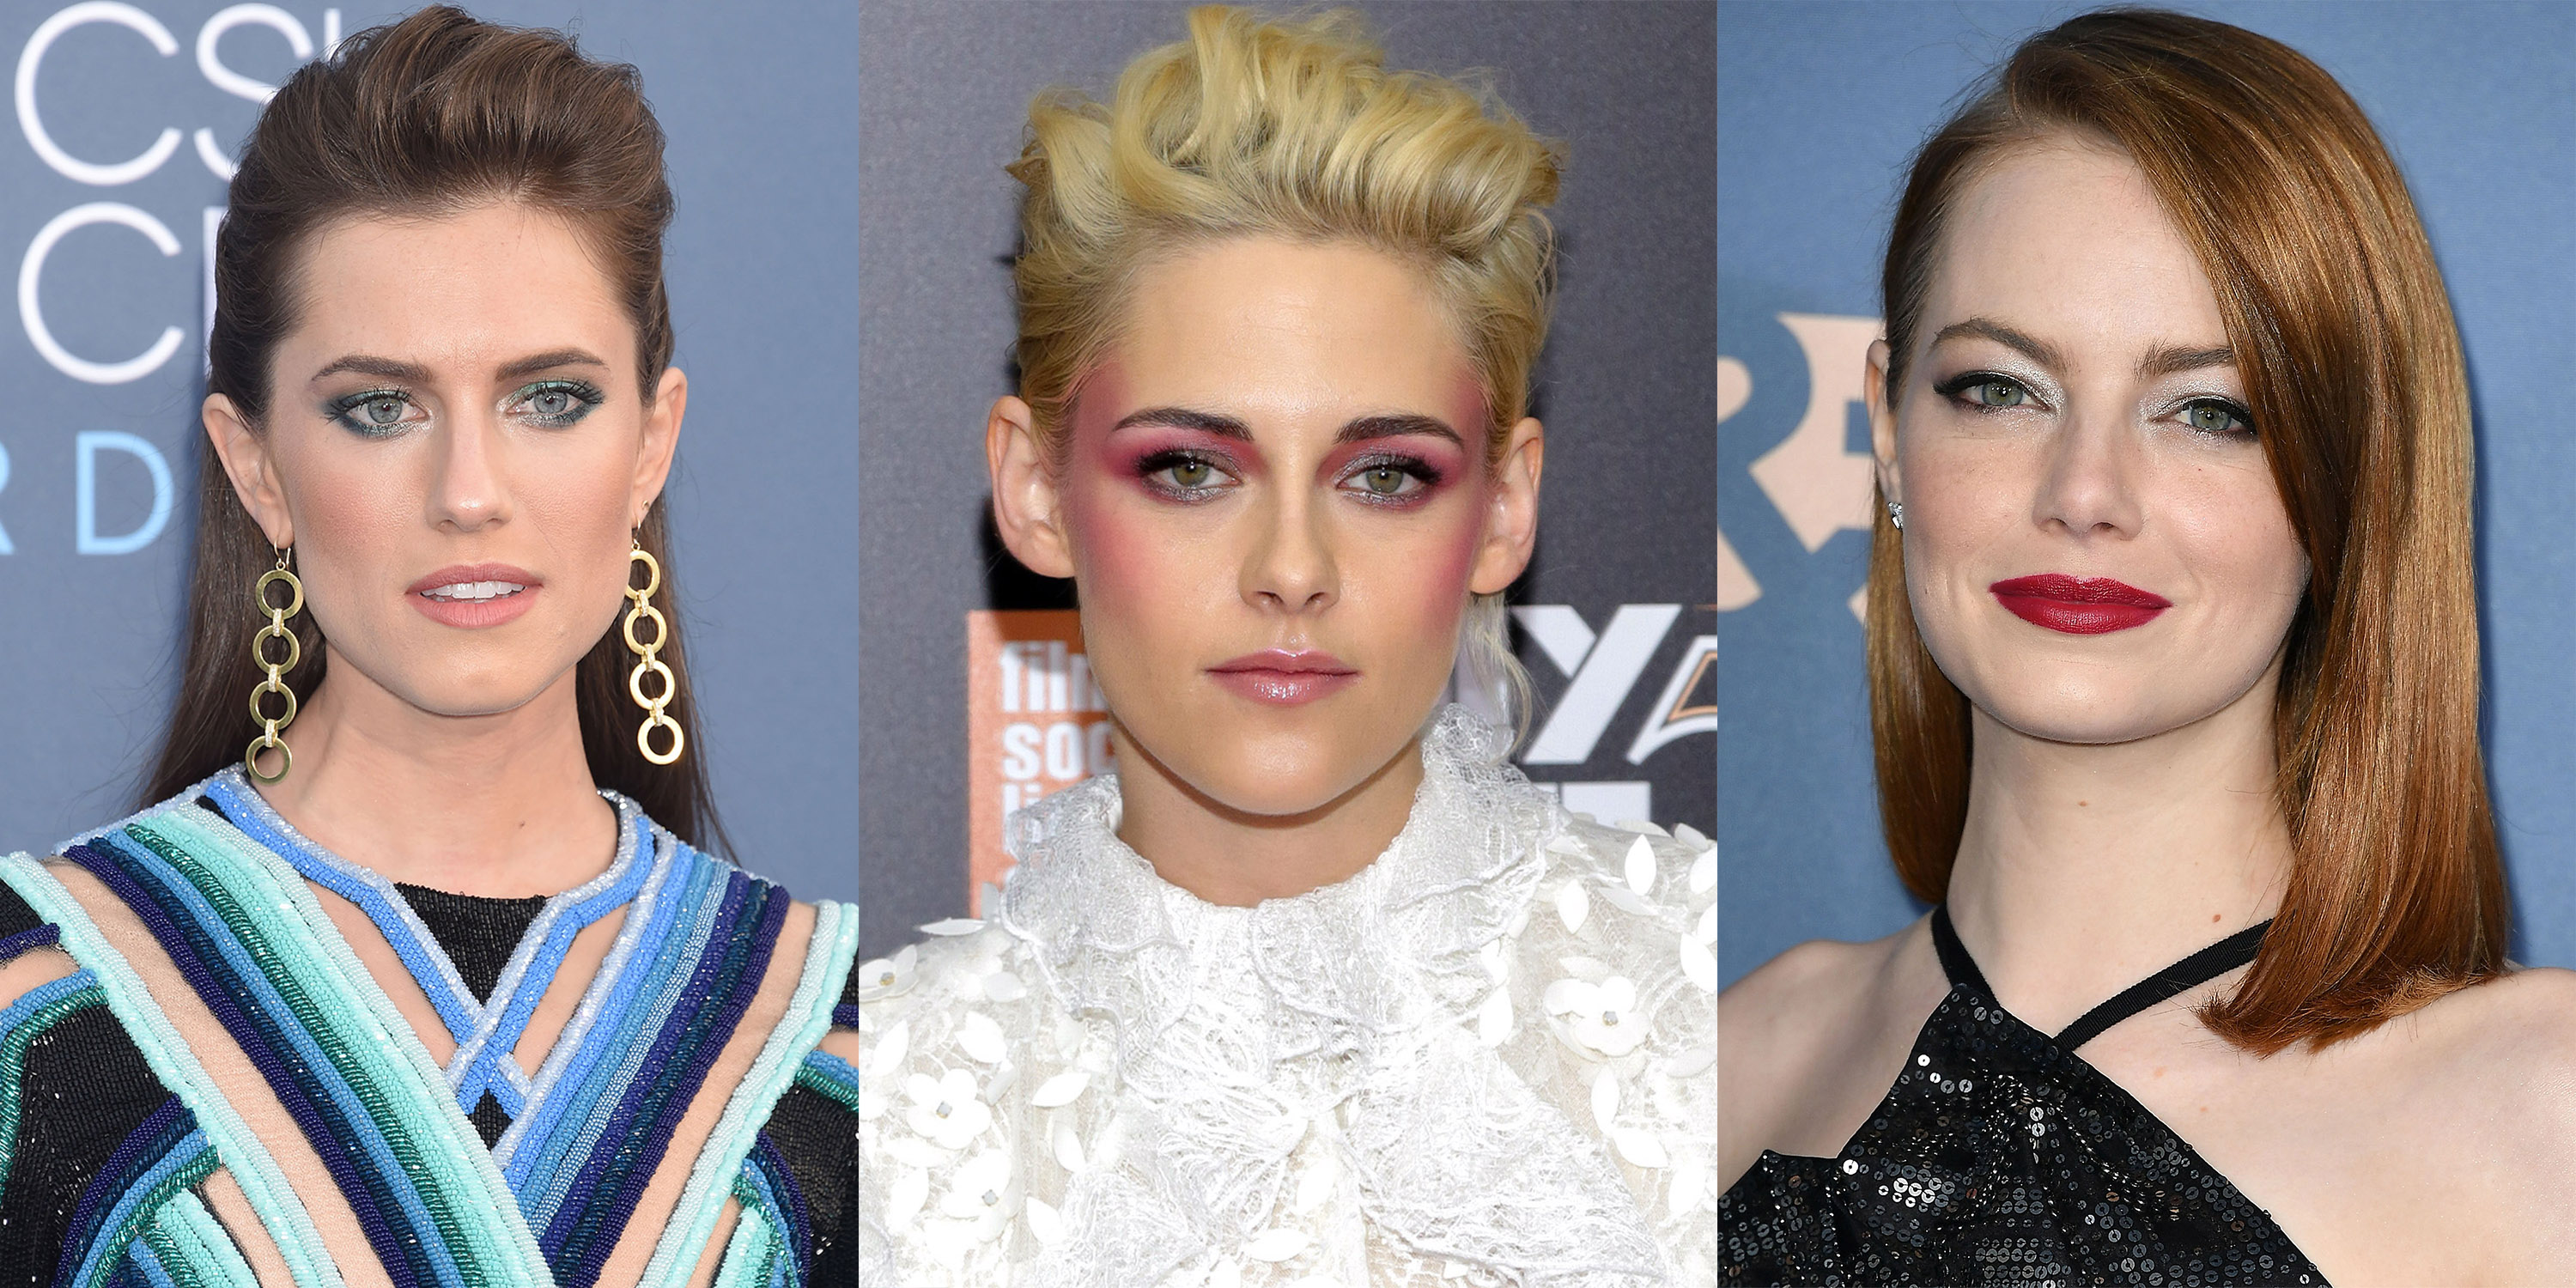 19 Haircuts For Older Women Winter 2018 2019 Edition: Biggest Beauty Trends For 2017